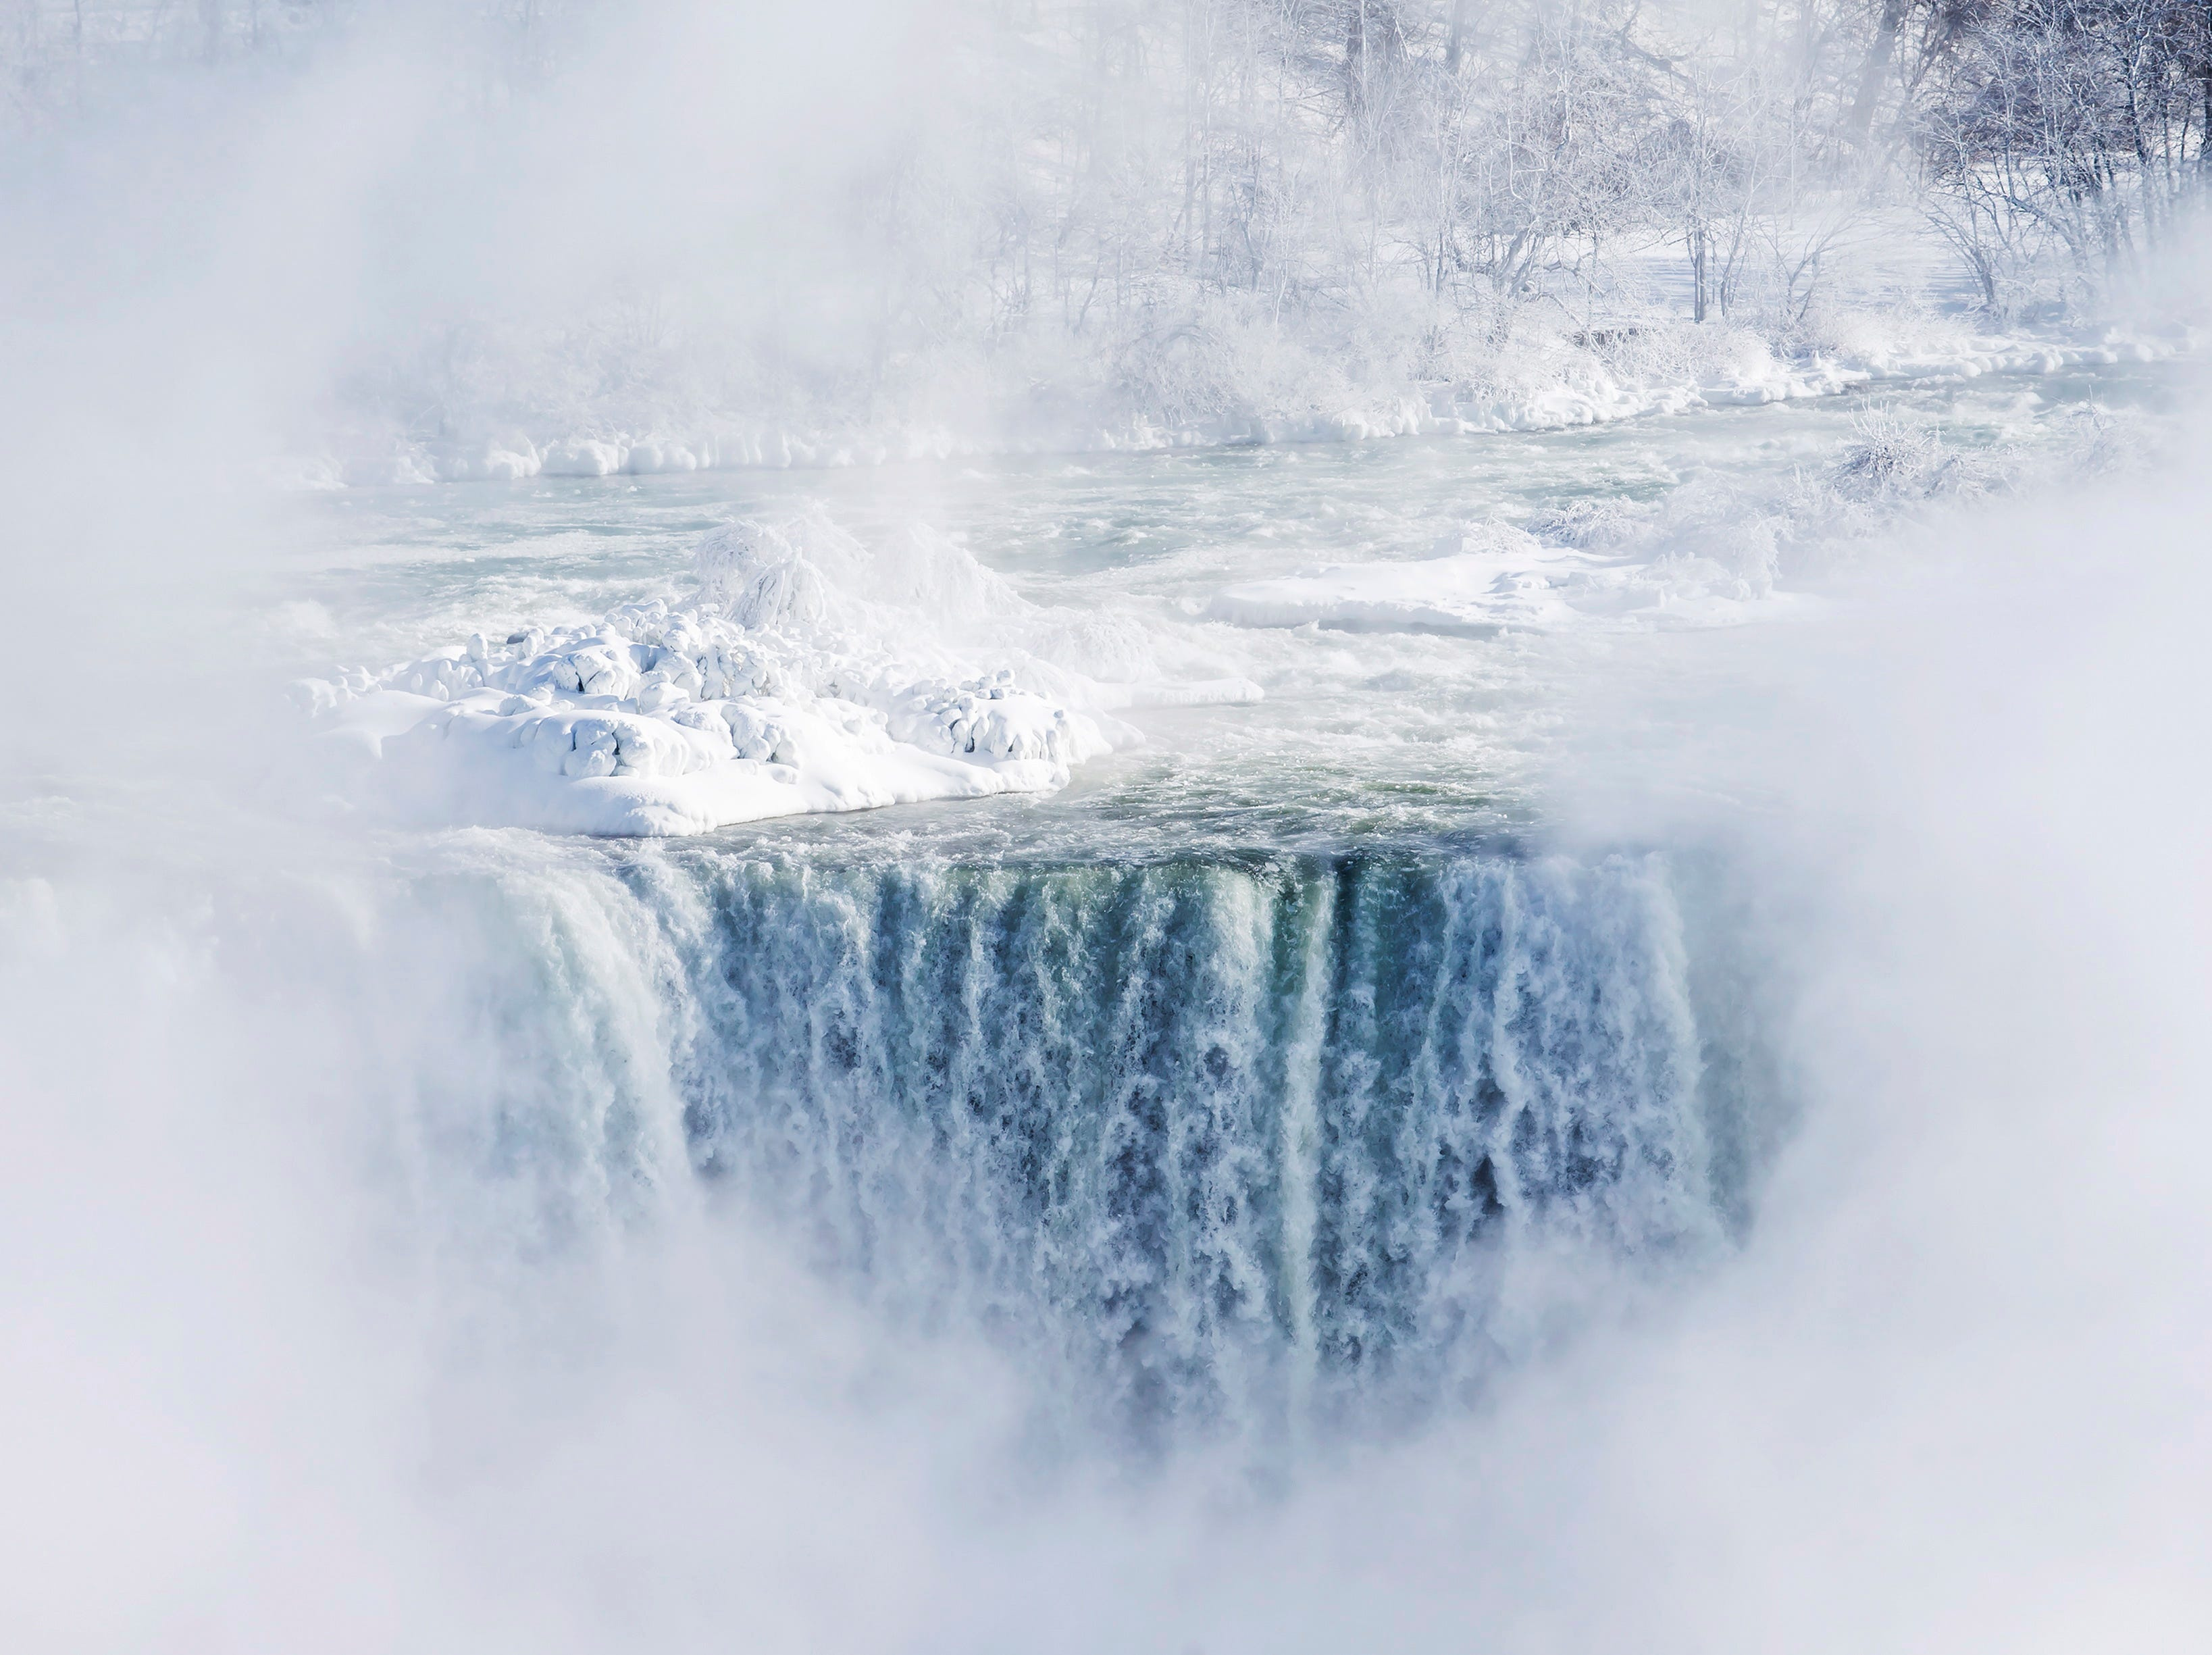 Ice and water flows over the brink of the Horseshoe Falls in Niagara Falls, Ontario, Canada Thursday, Jan. 31, 2019.